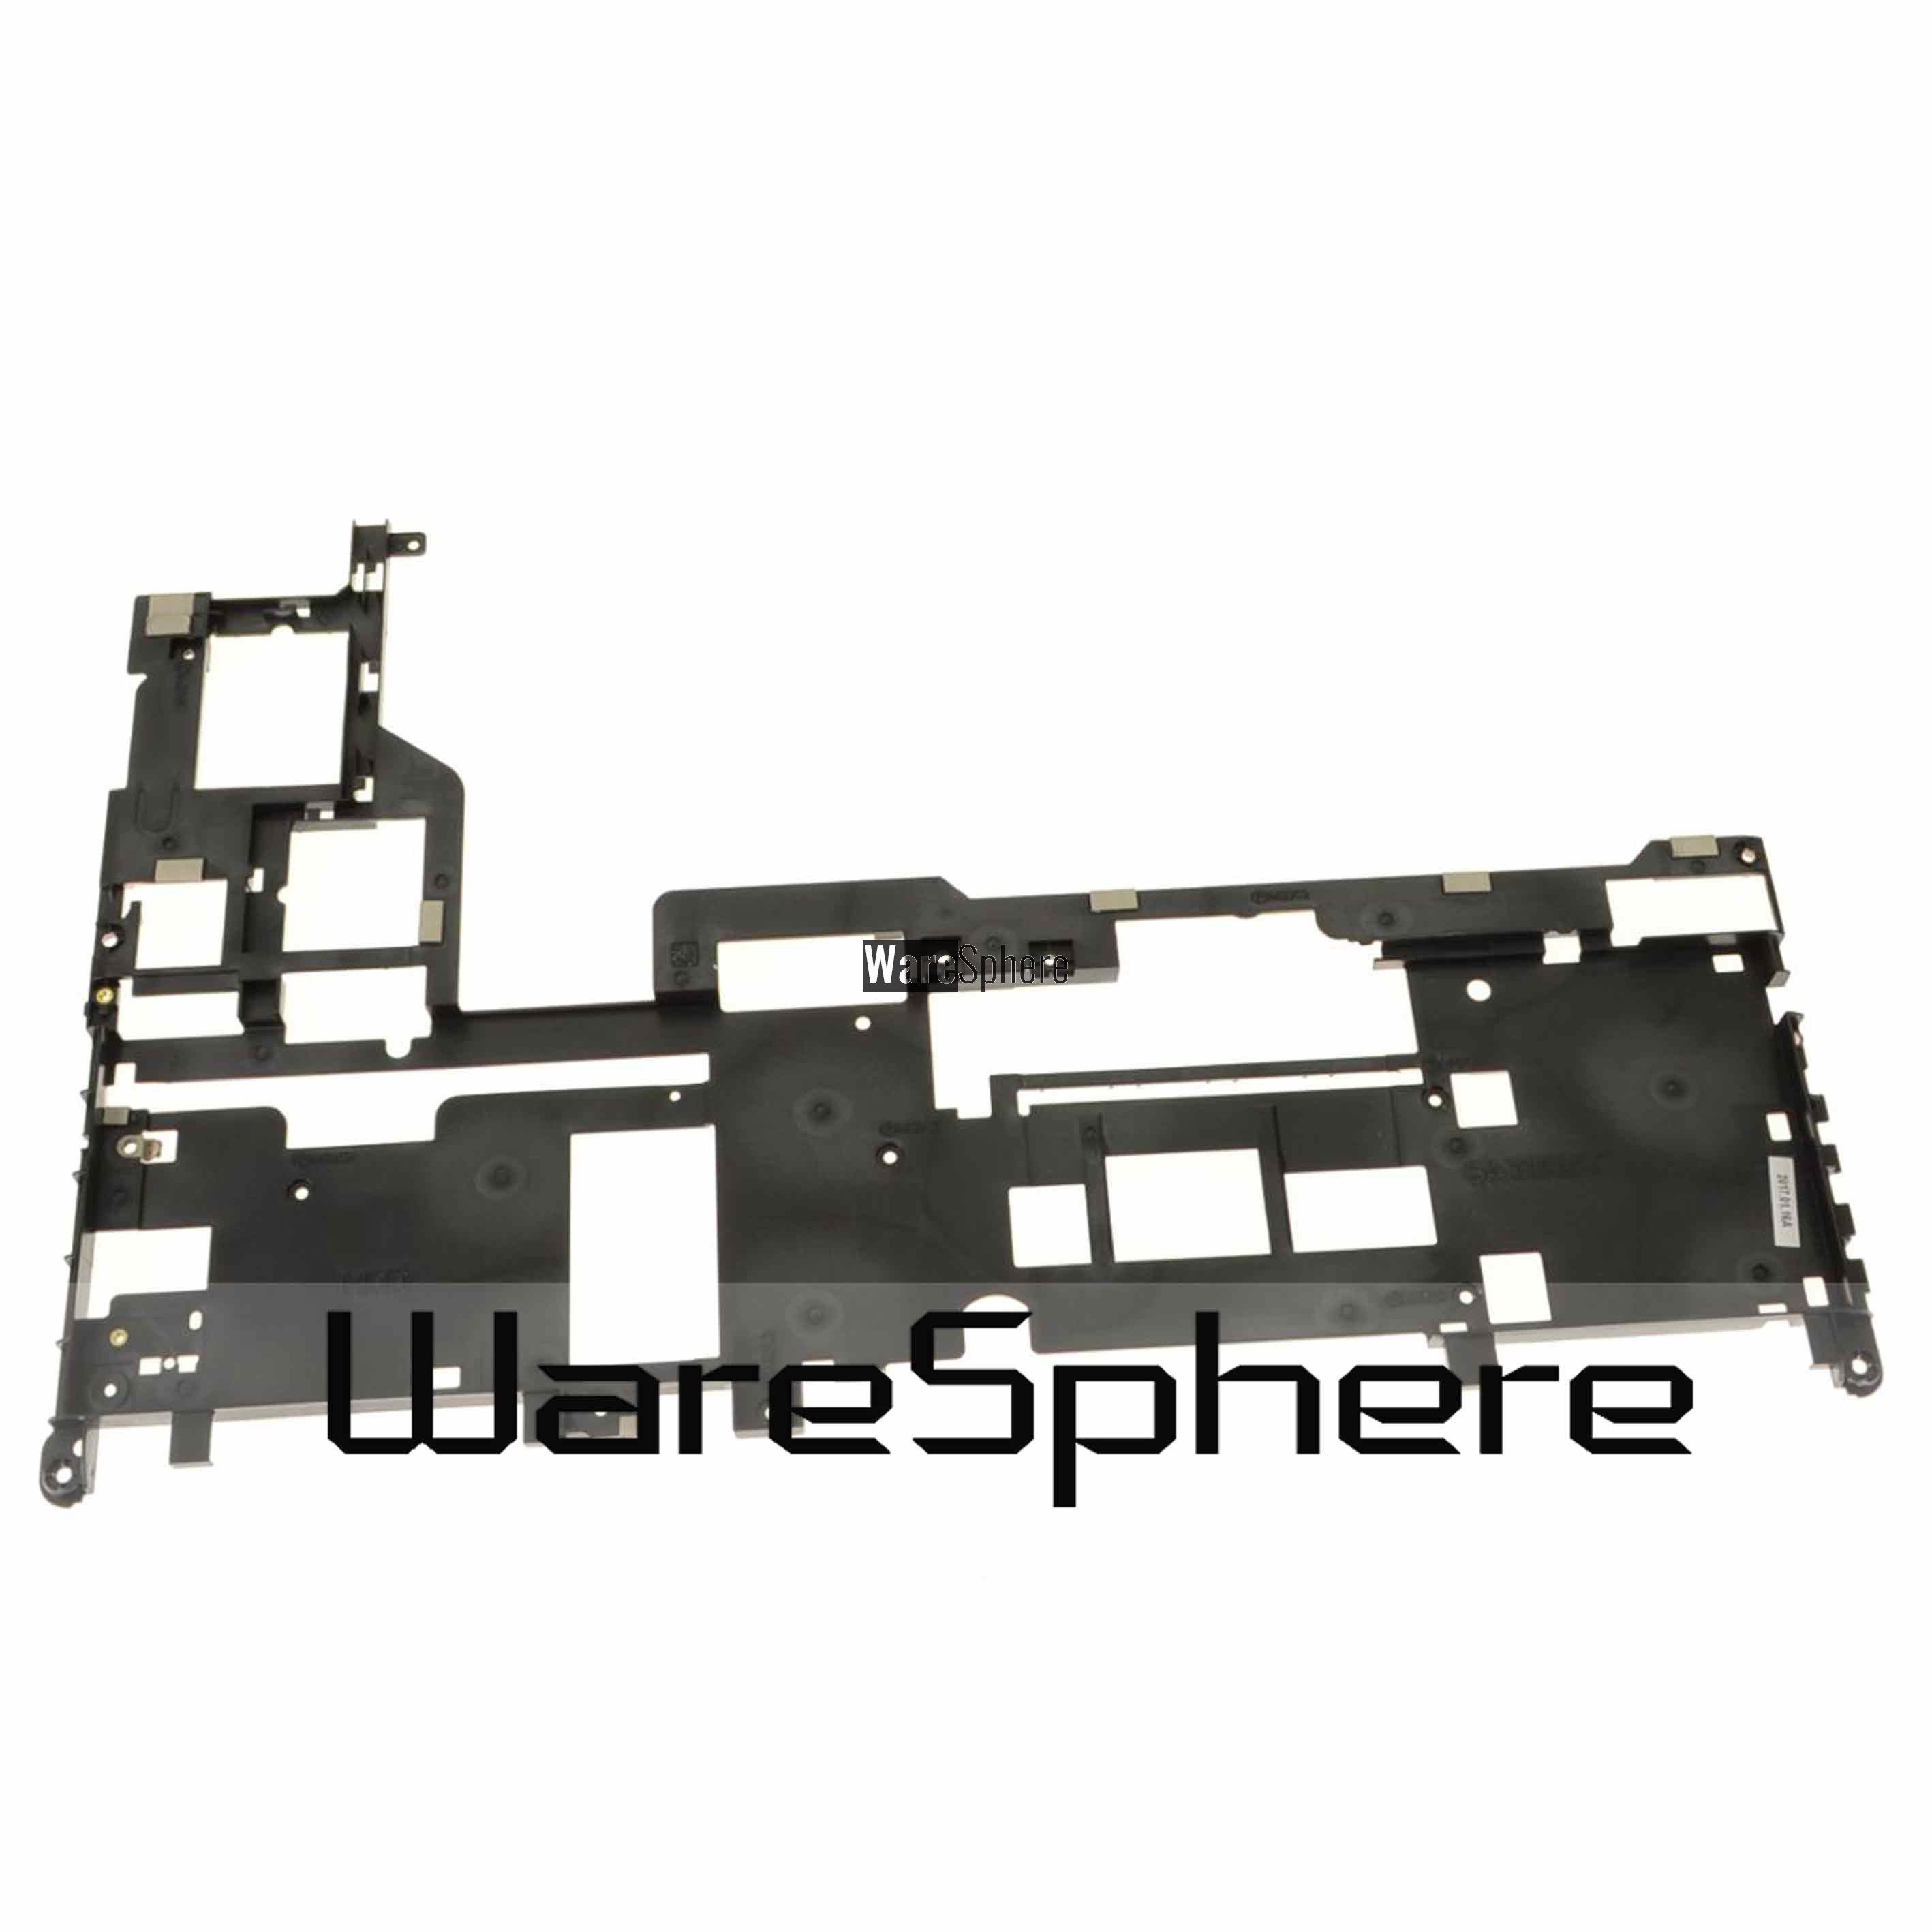 29JC7 029JC7 AP1S4000200 Middle Frame Support Bracket Assembly For Dell  Latitude 5580